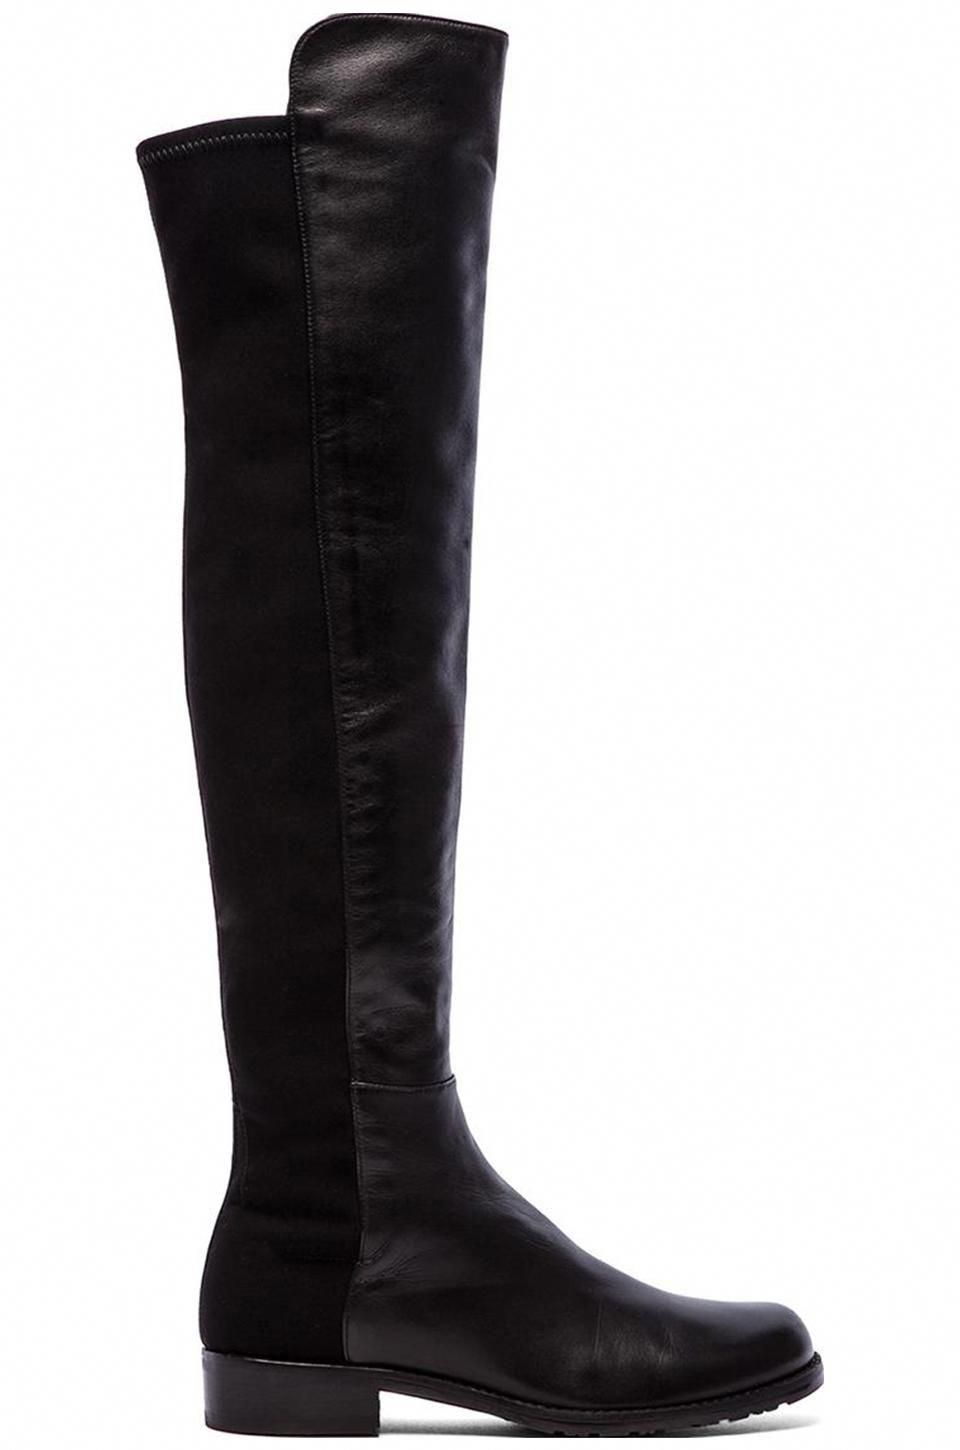 23dde115df6 Stuart Weitzman 5050 Stretch Leather Boot in Black  StuartWeitzman ...